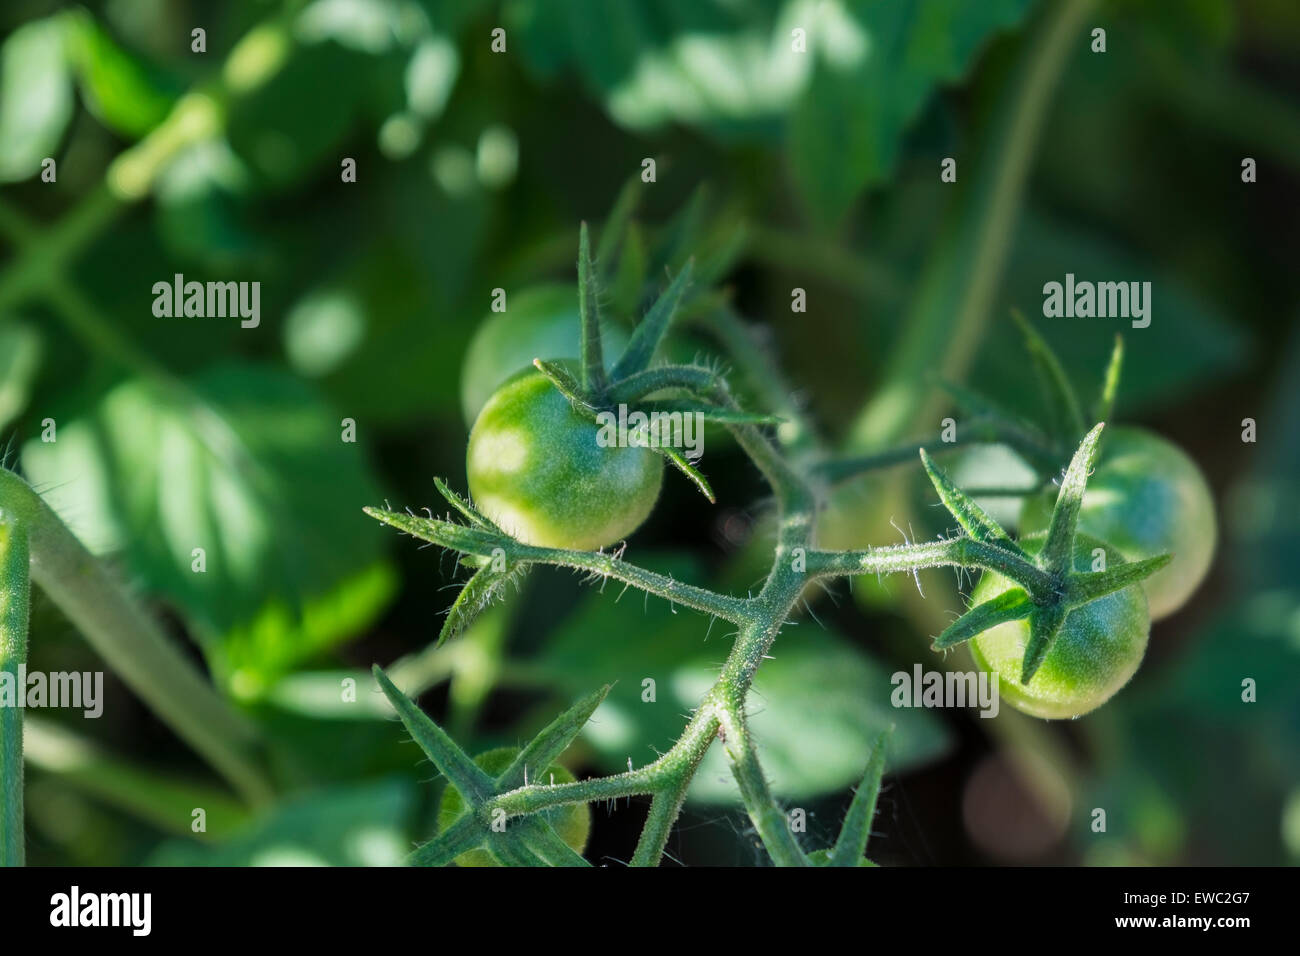 A tomato plant with small, new green tomatoes, Solanum lycopersicum. USA. - Stock Image